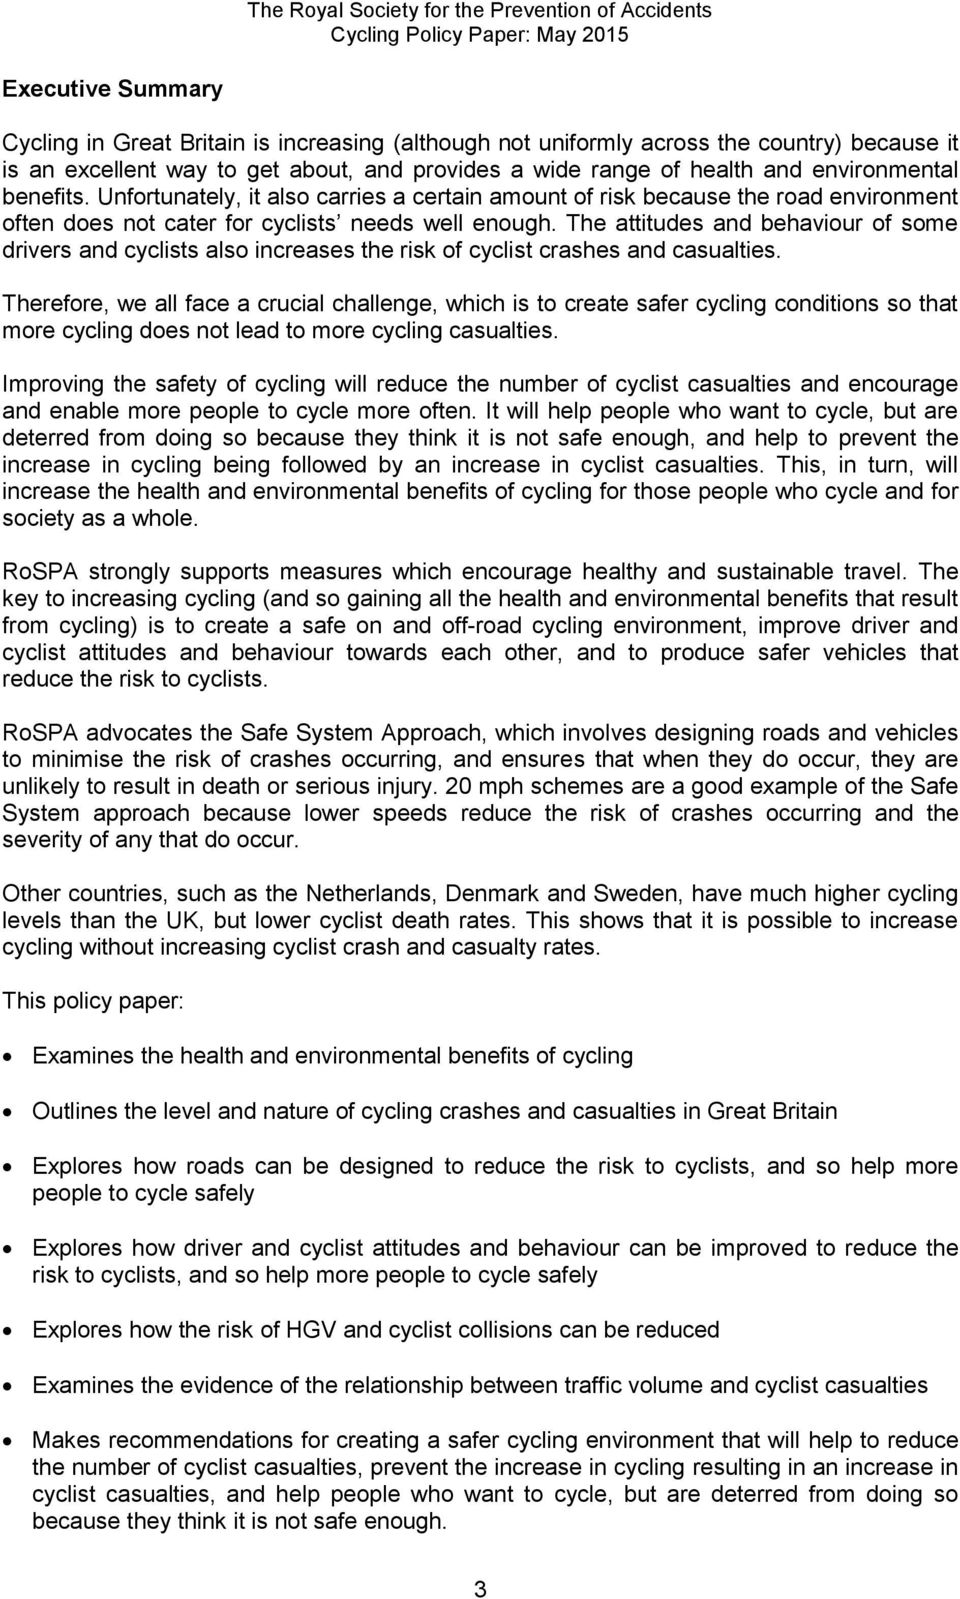 The attitudes and behaviour of some drivers and cyclists also increases the risk of cyclist crashes and casualties.